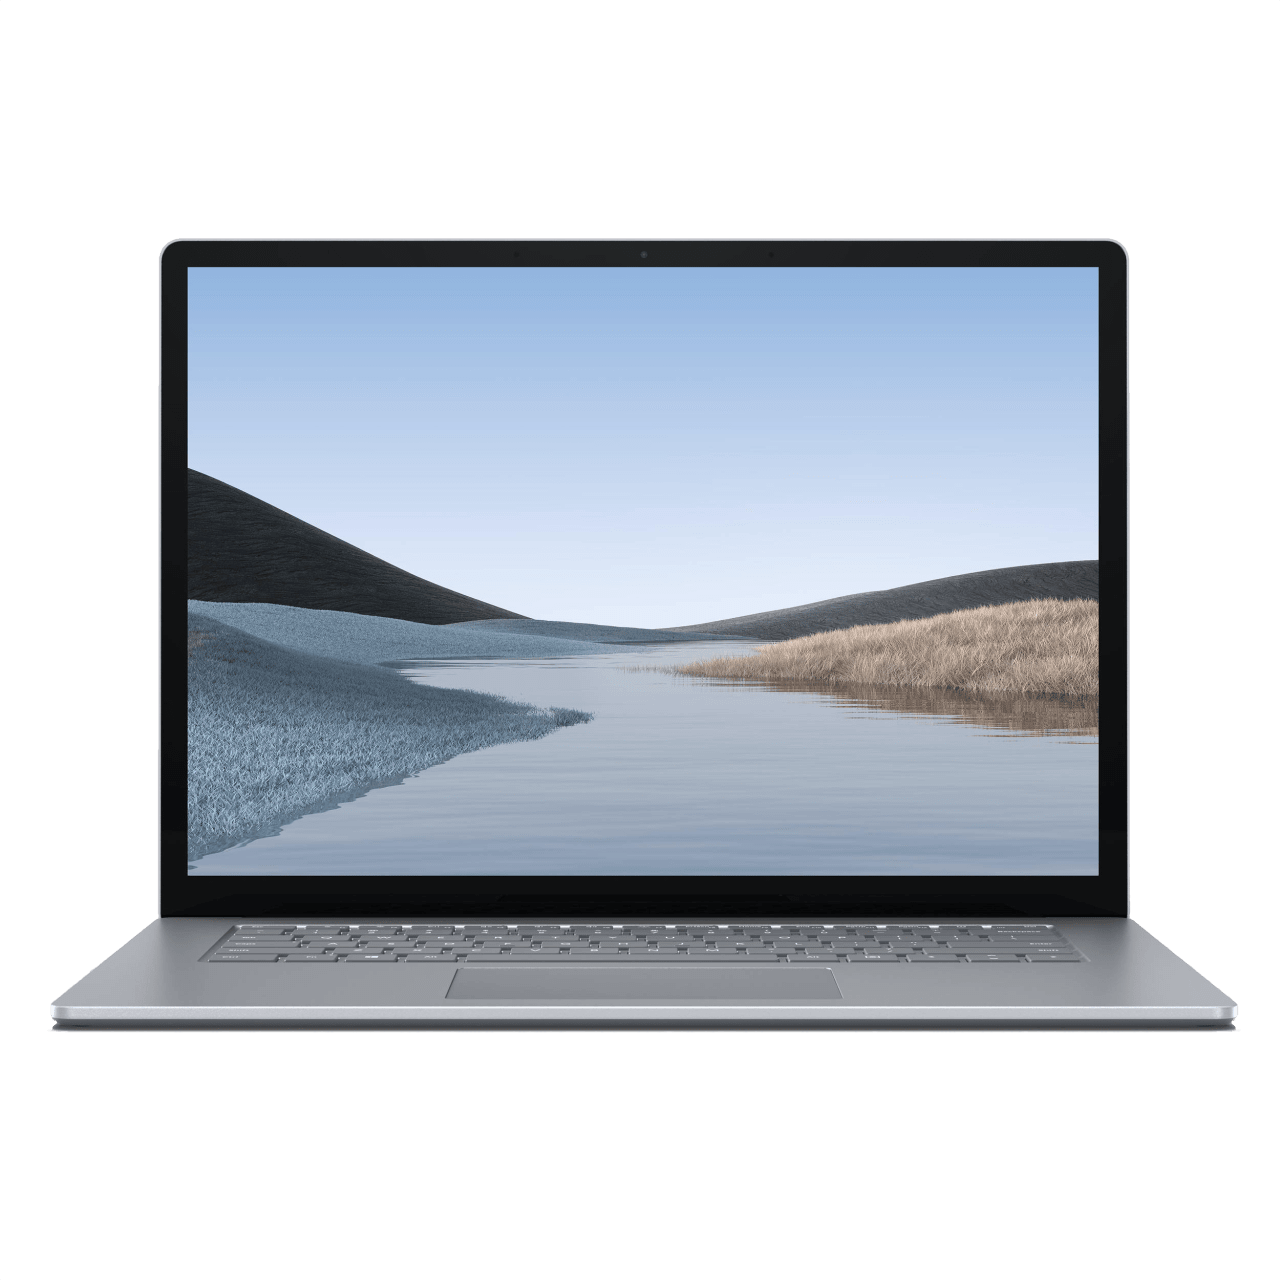 Platin (Metall) Microsoft Surface Laptop 3.1